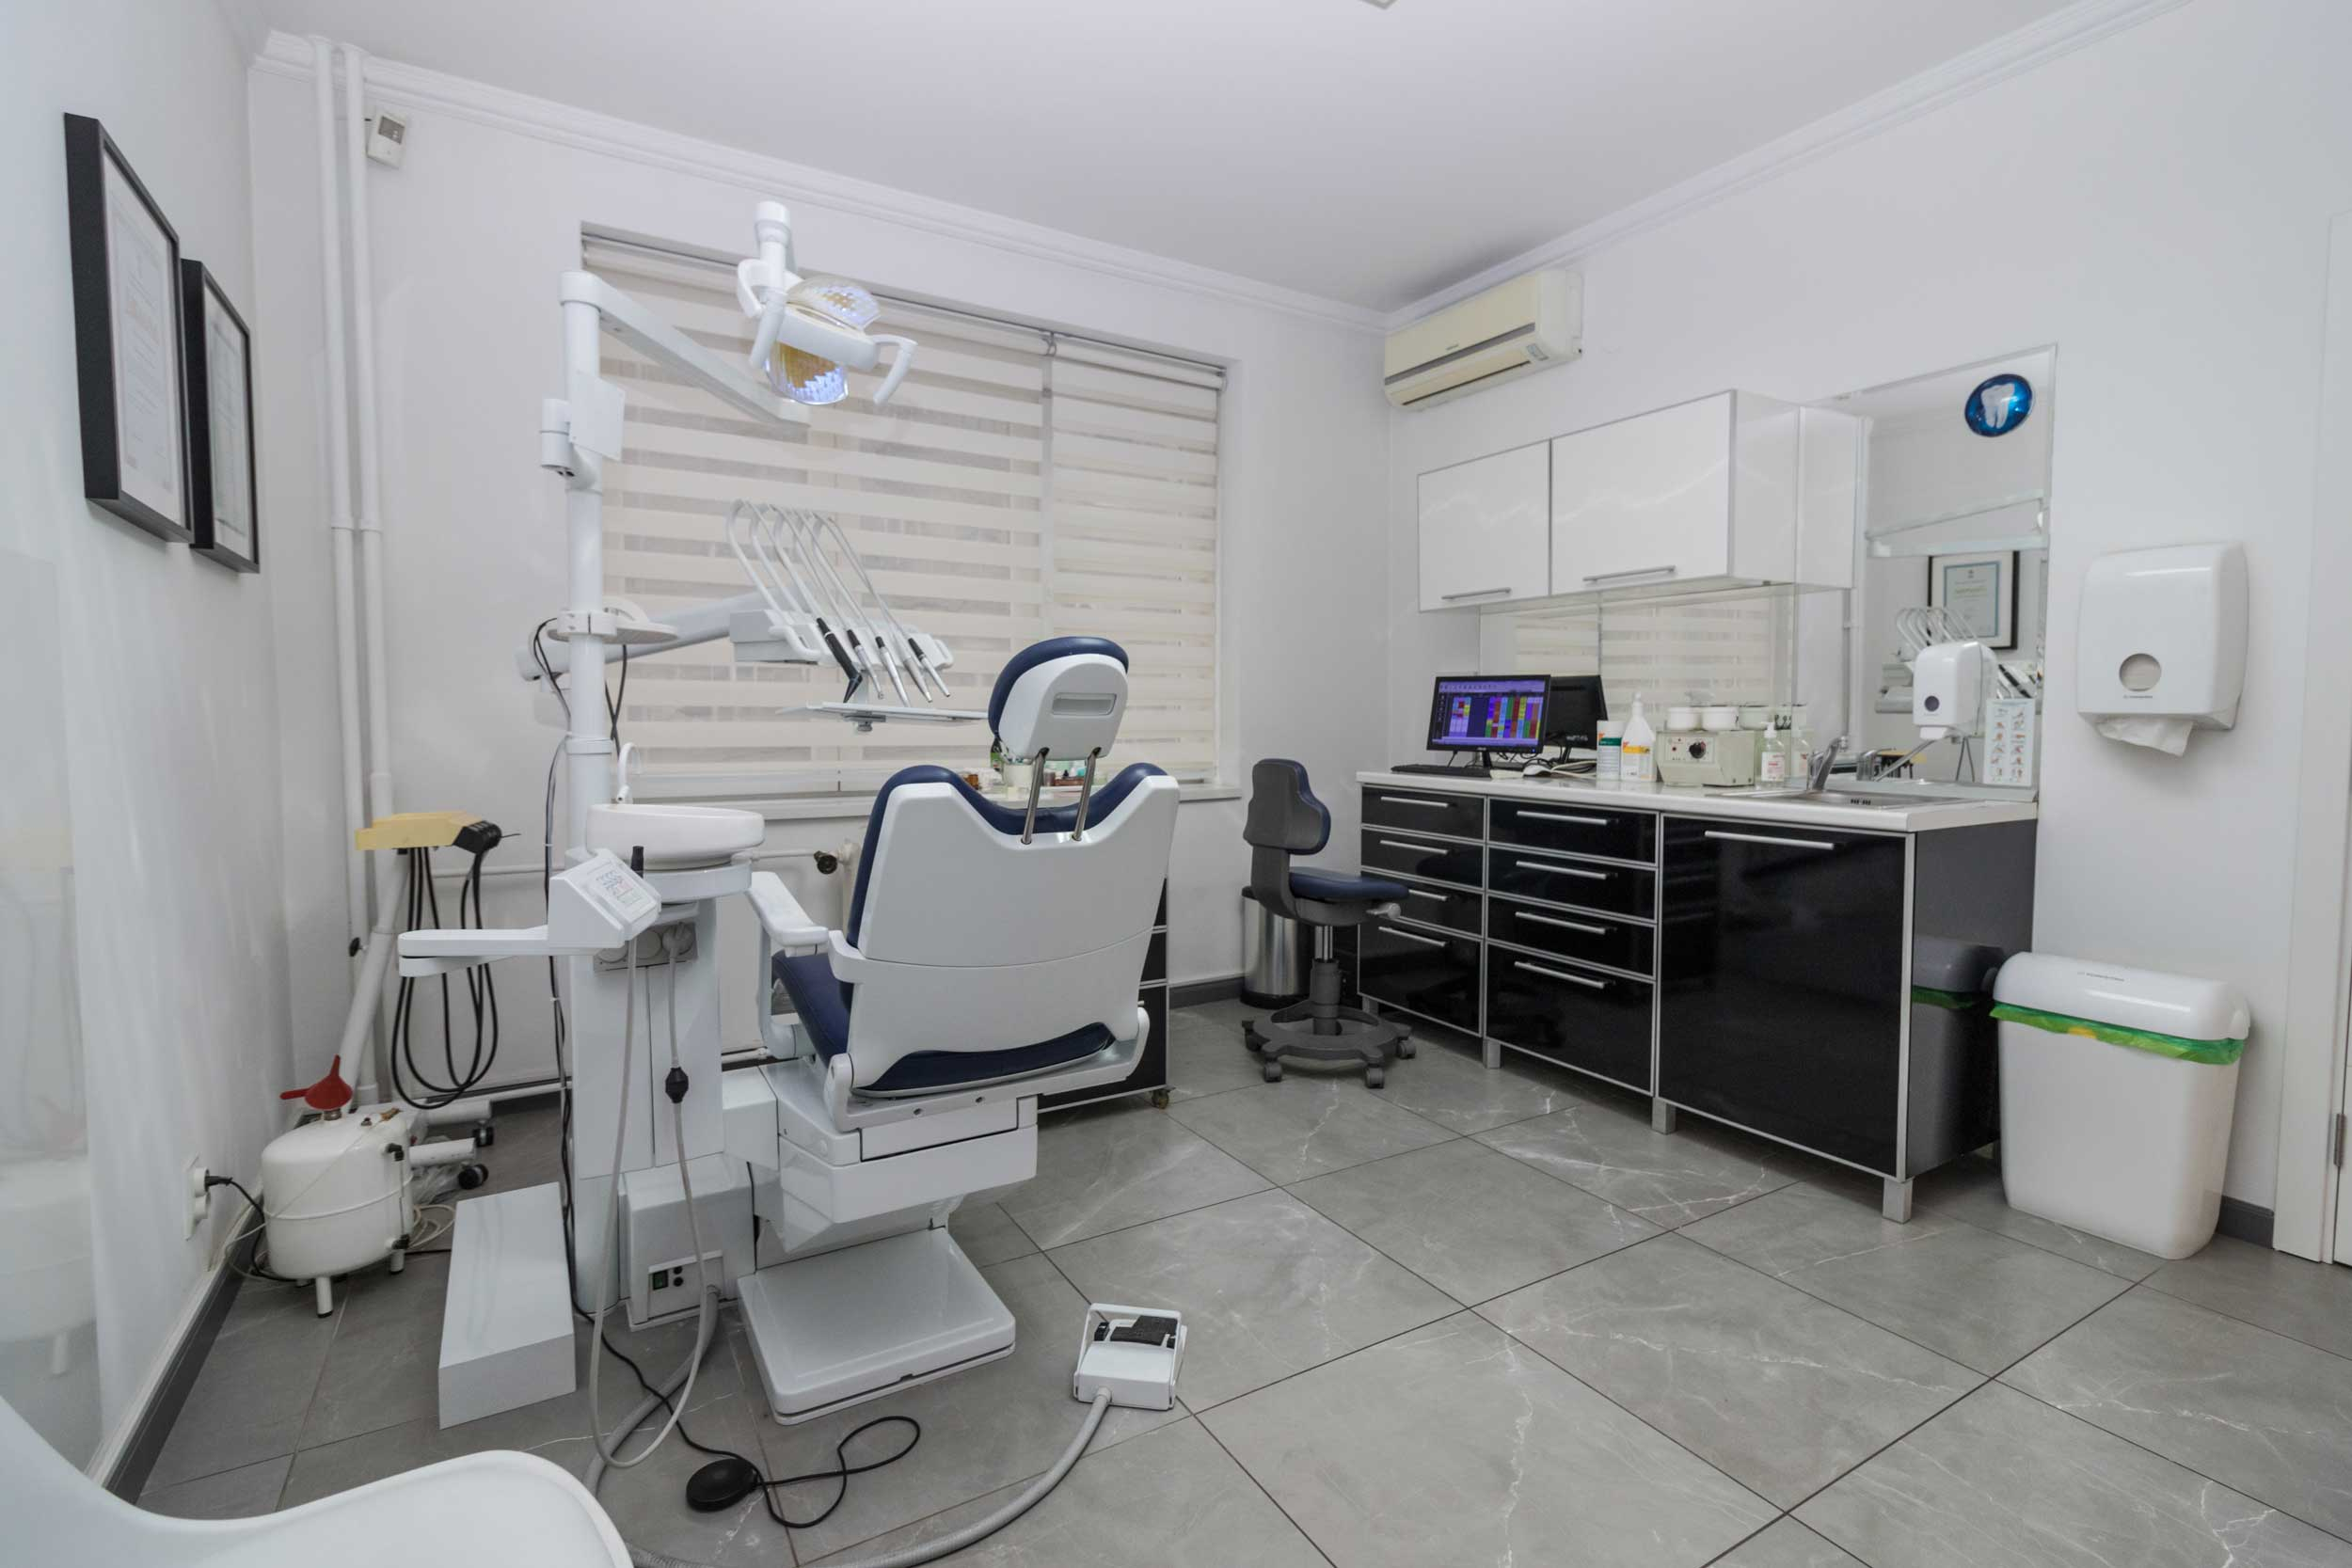 stomatoloska-ordinacija-vunjak-dental-clinic-ordinacija-14